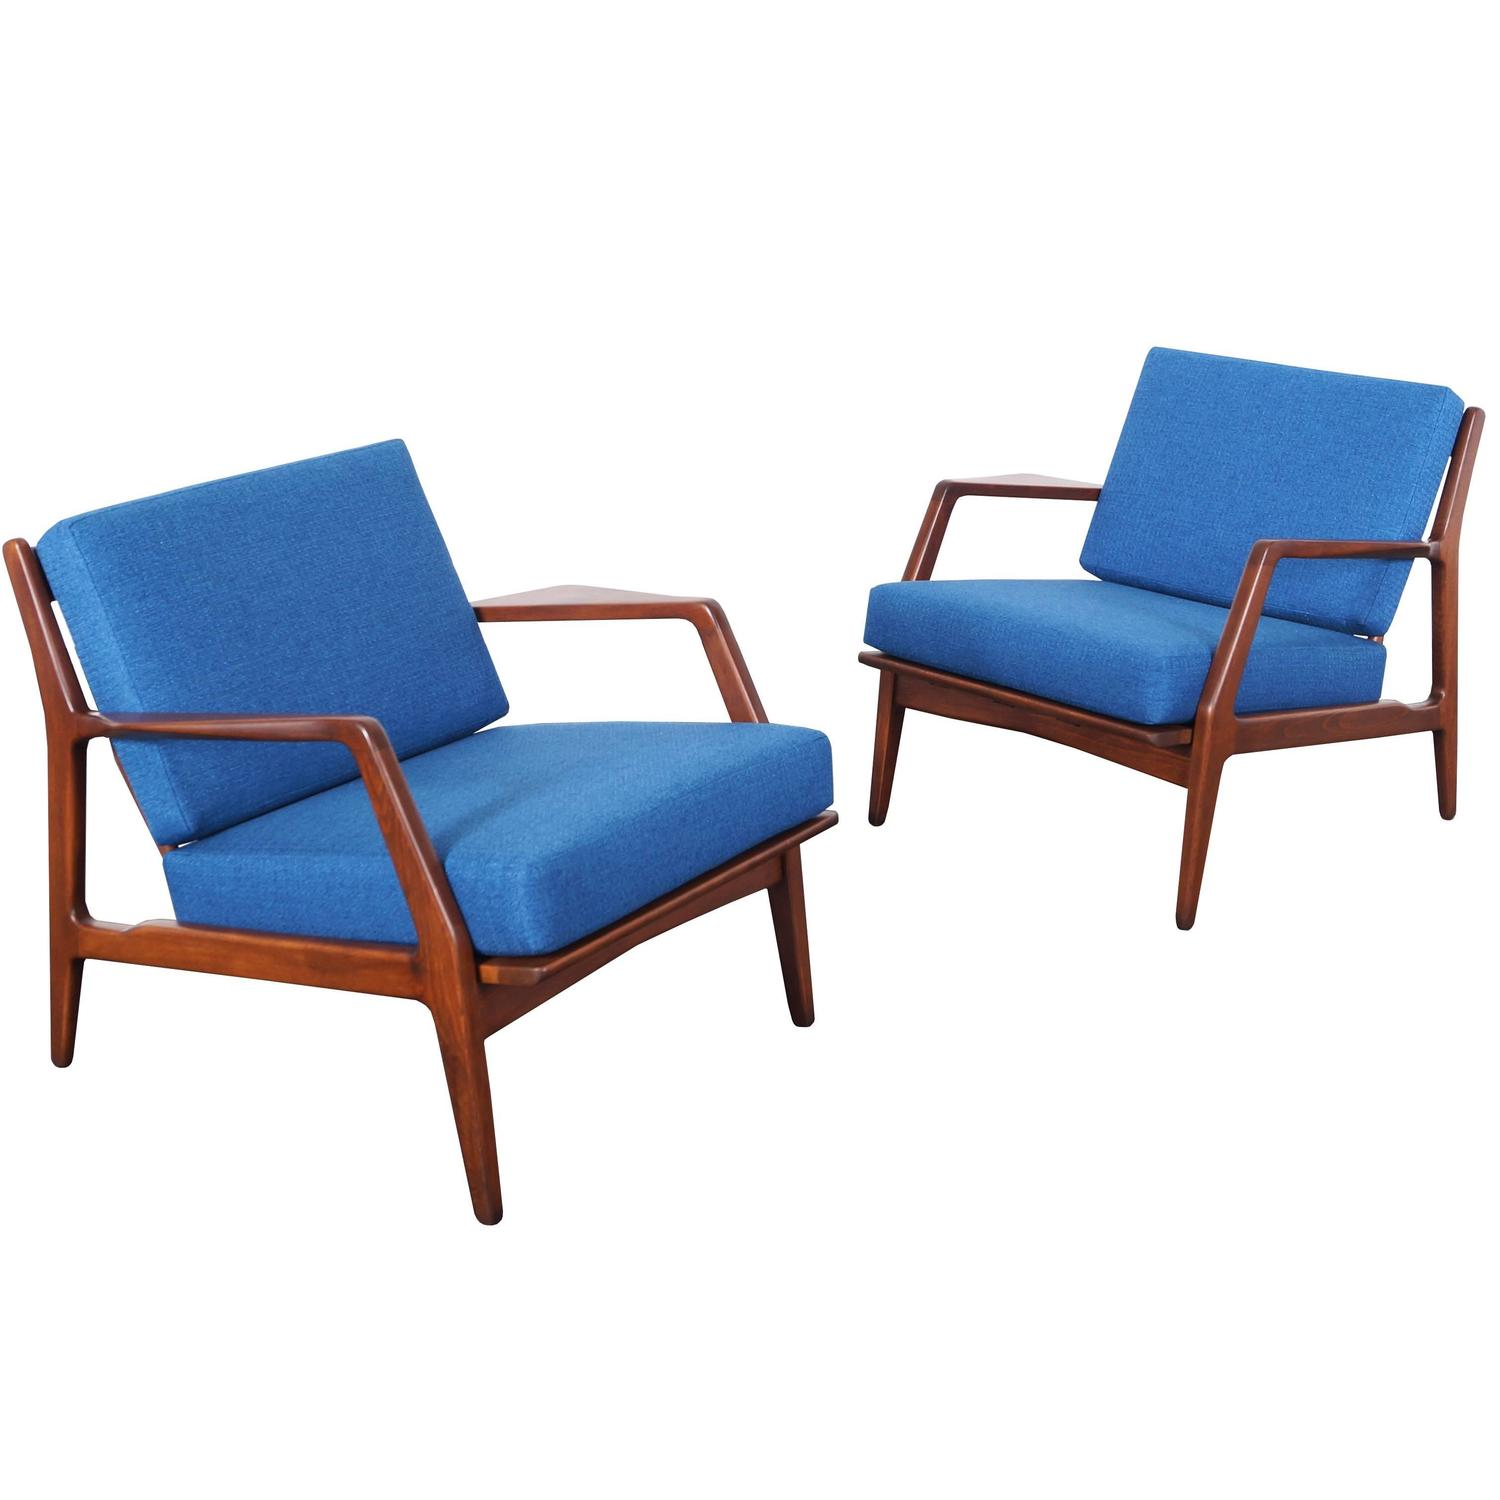 Mid century lounge chairs by ib kofod larsen for sale at Mid century chairs